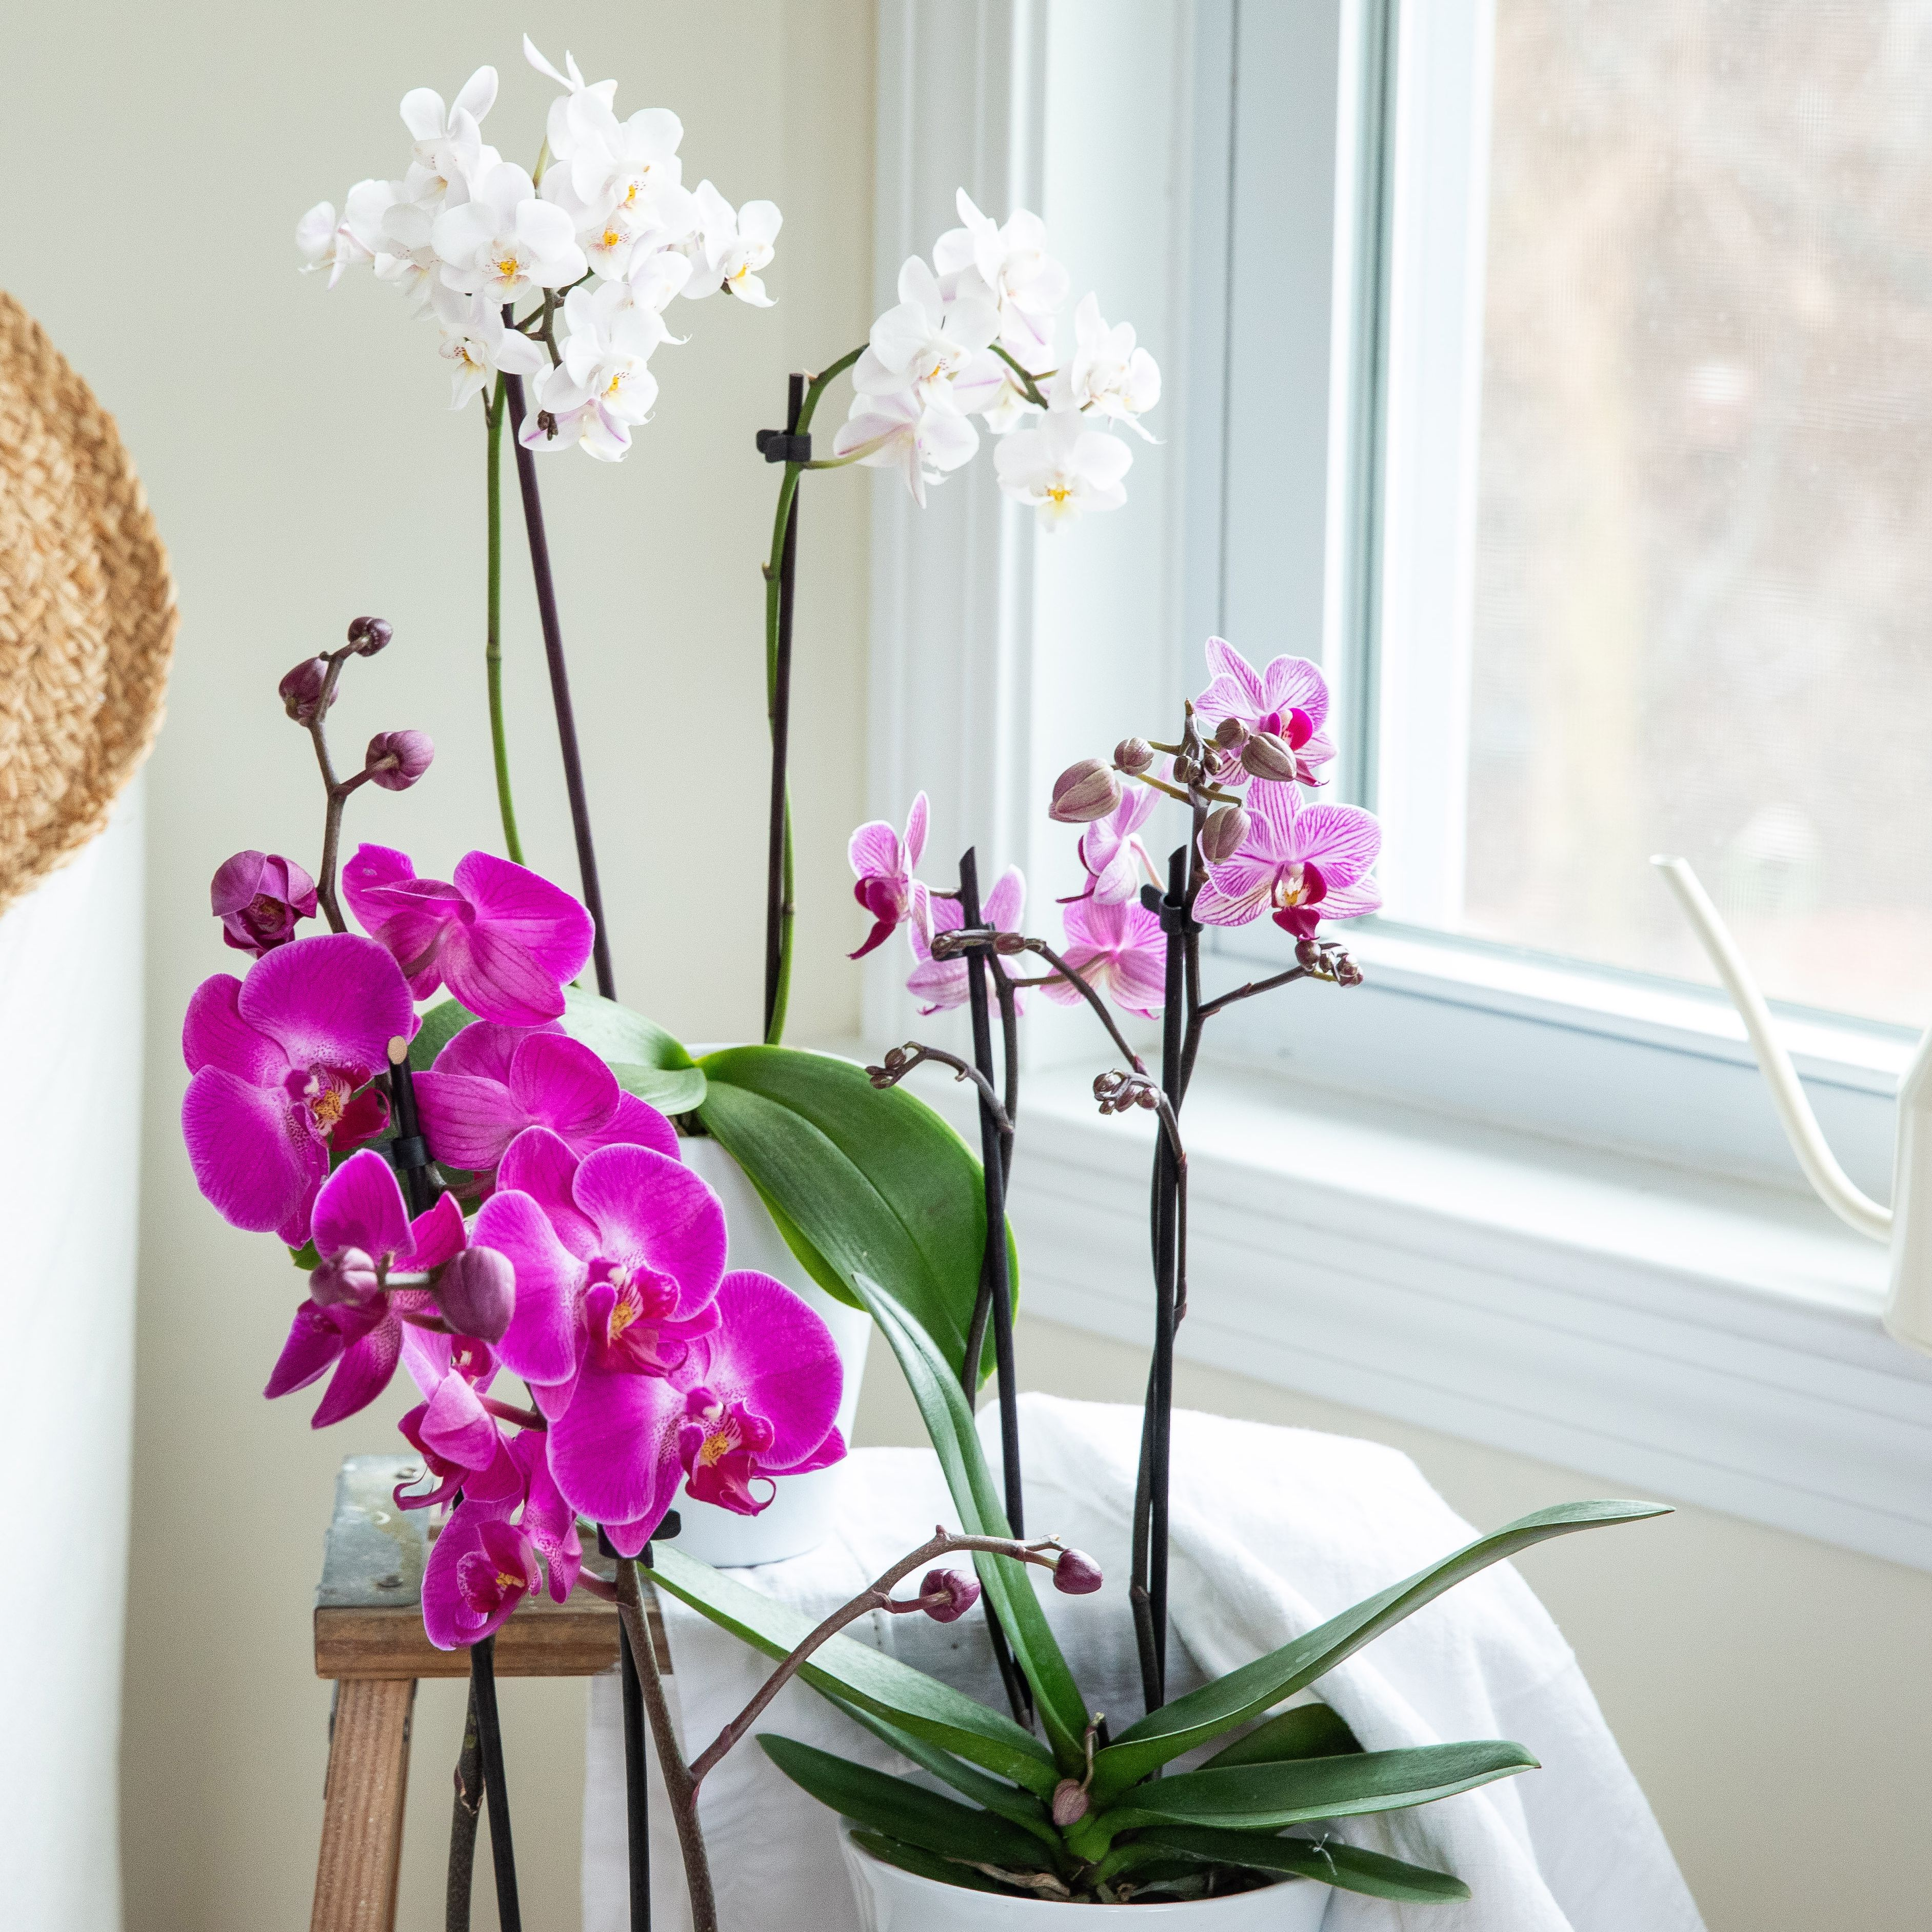 How To Water Orchids Correctly